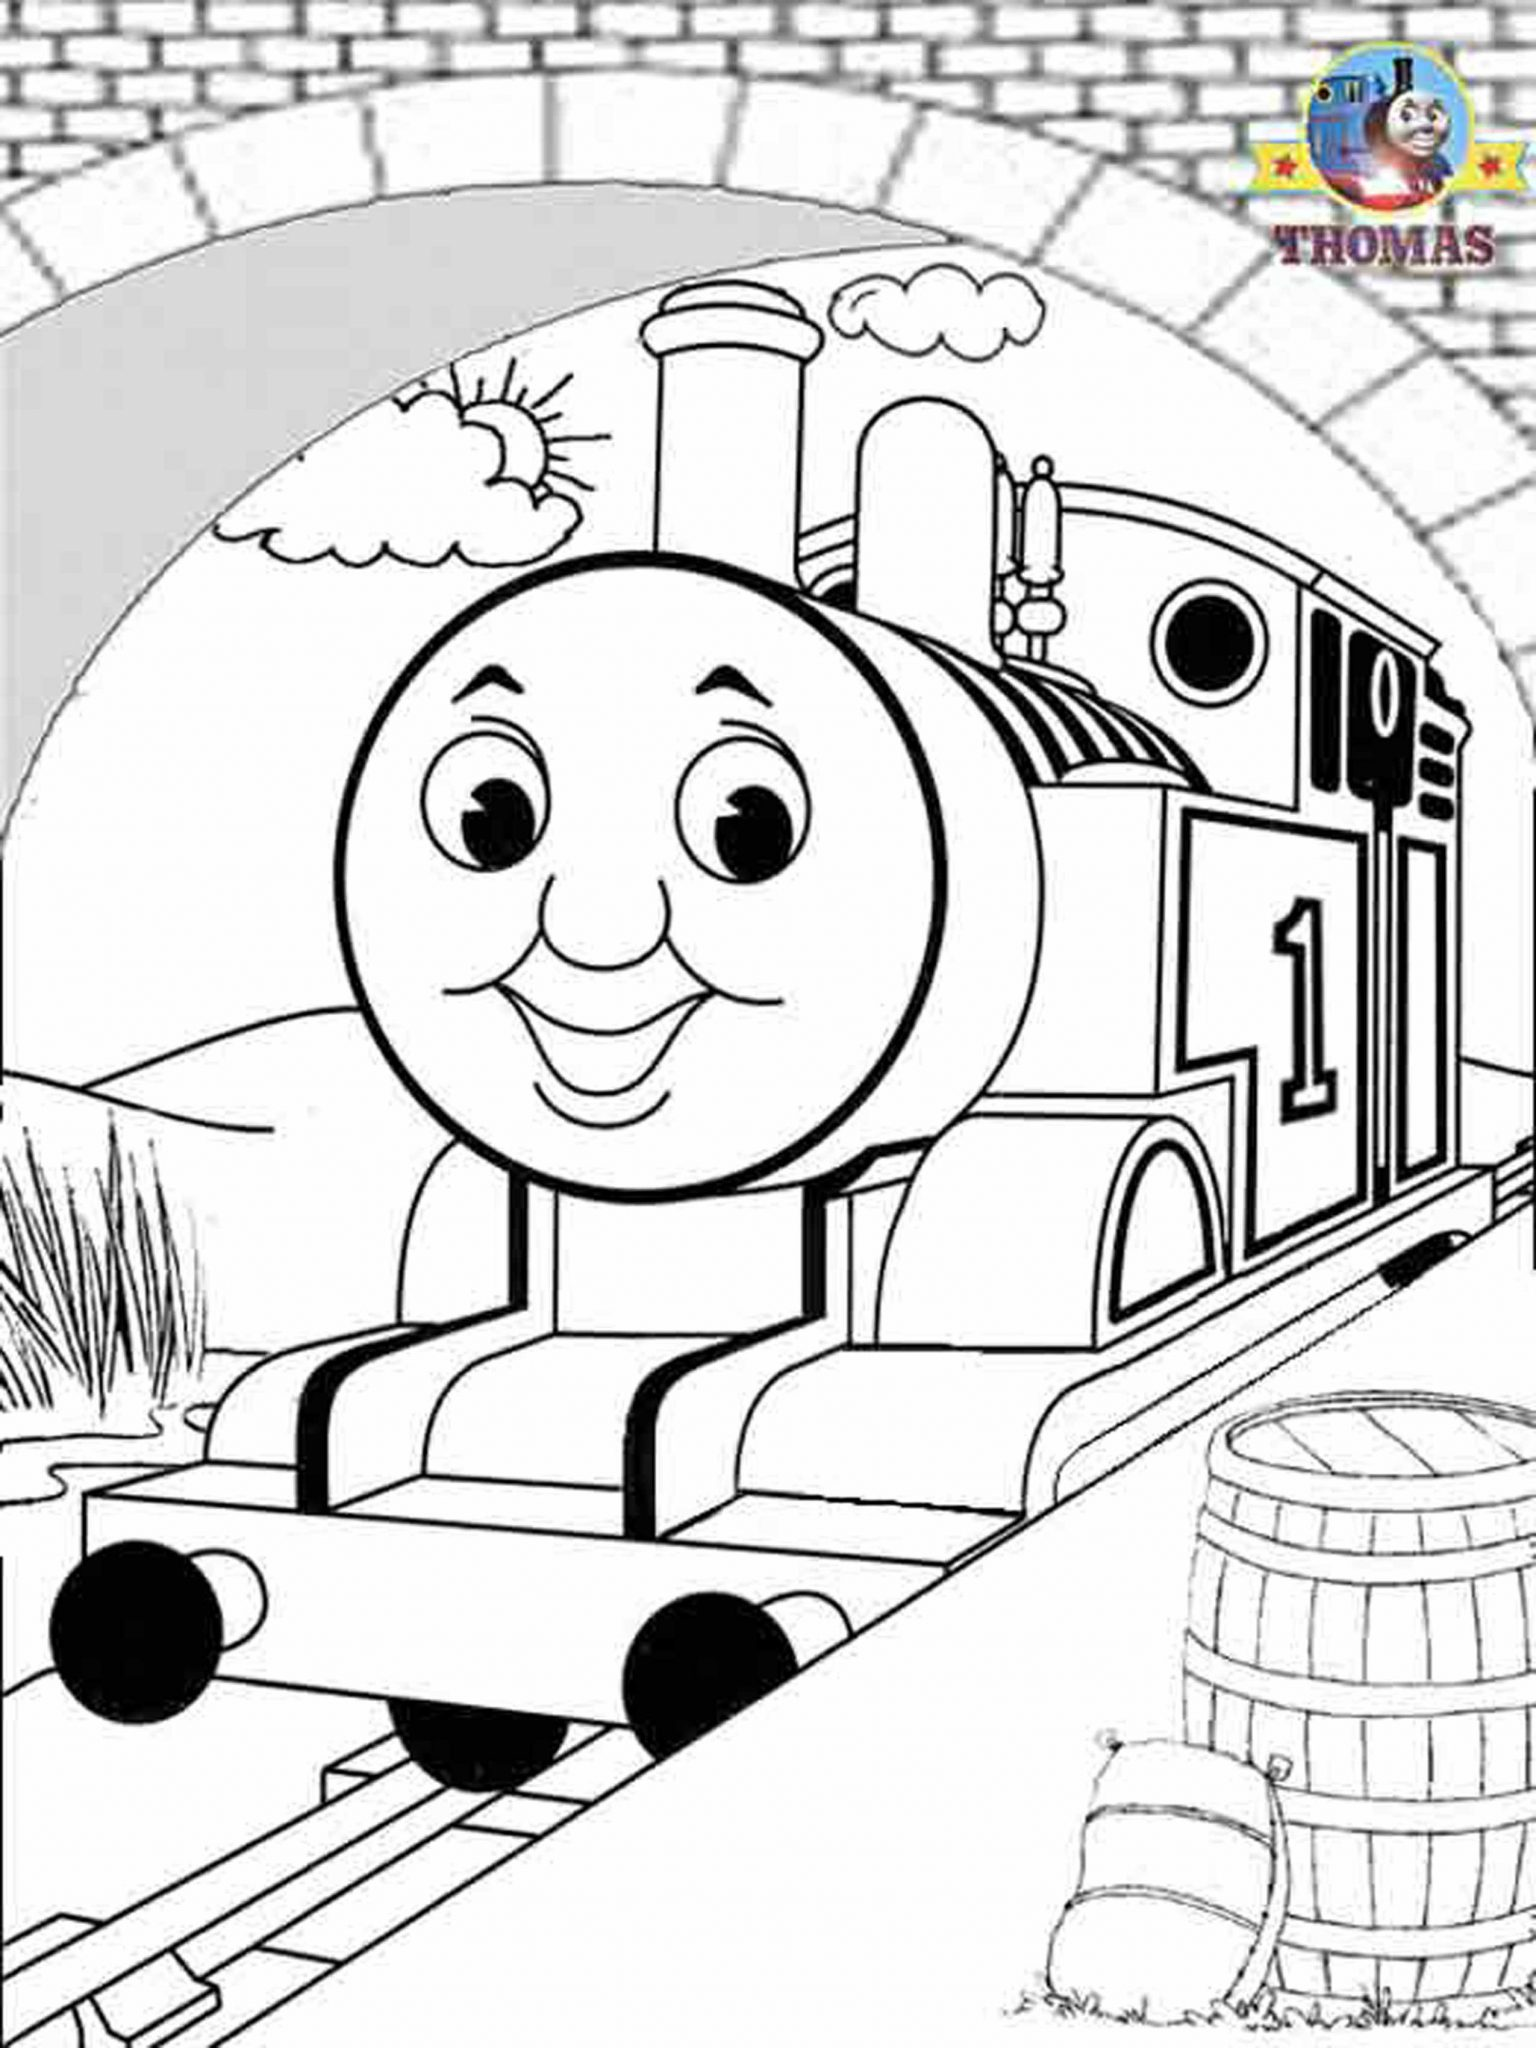 Online Coloring Pages For Boys Thomas The Train